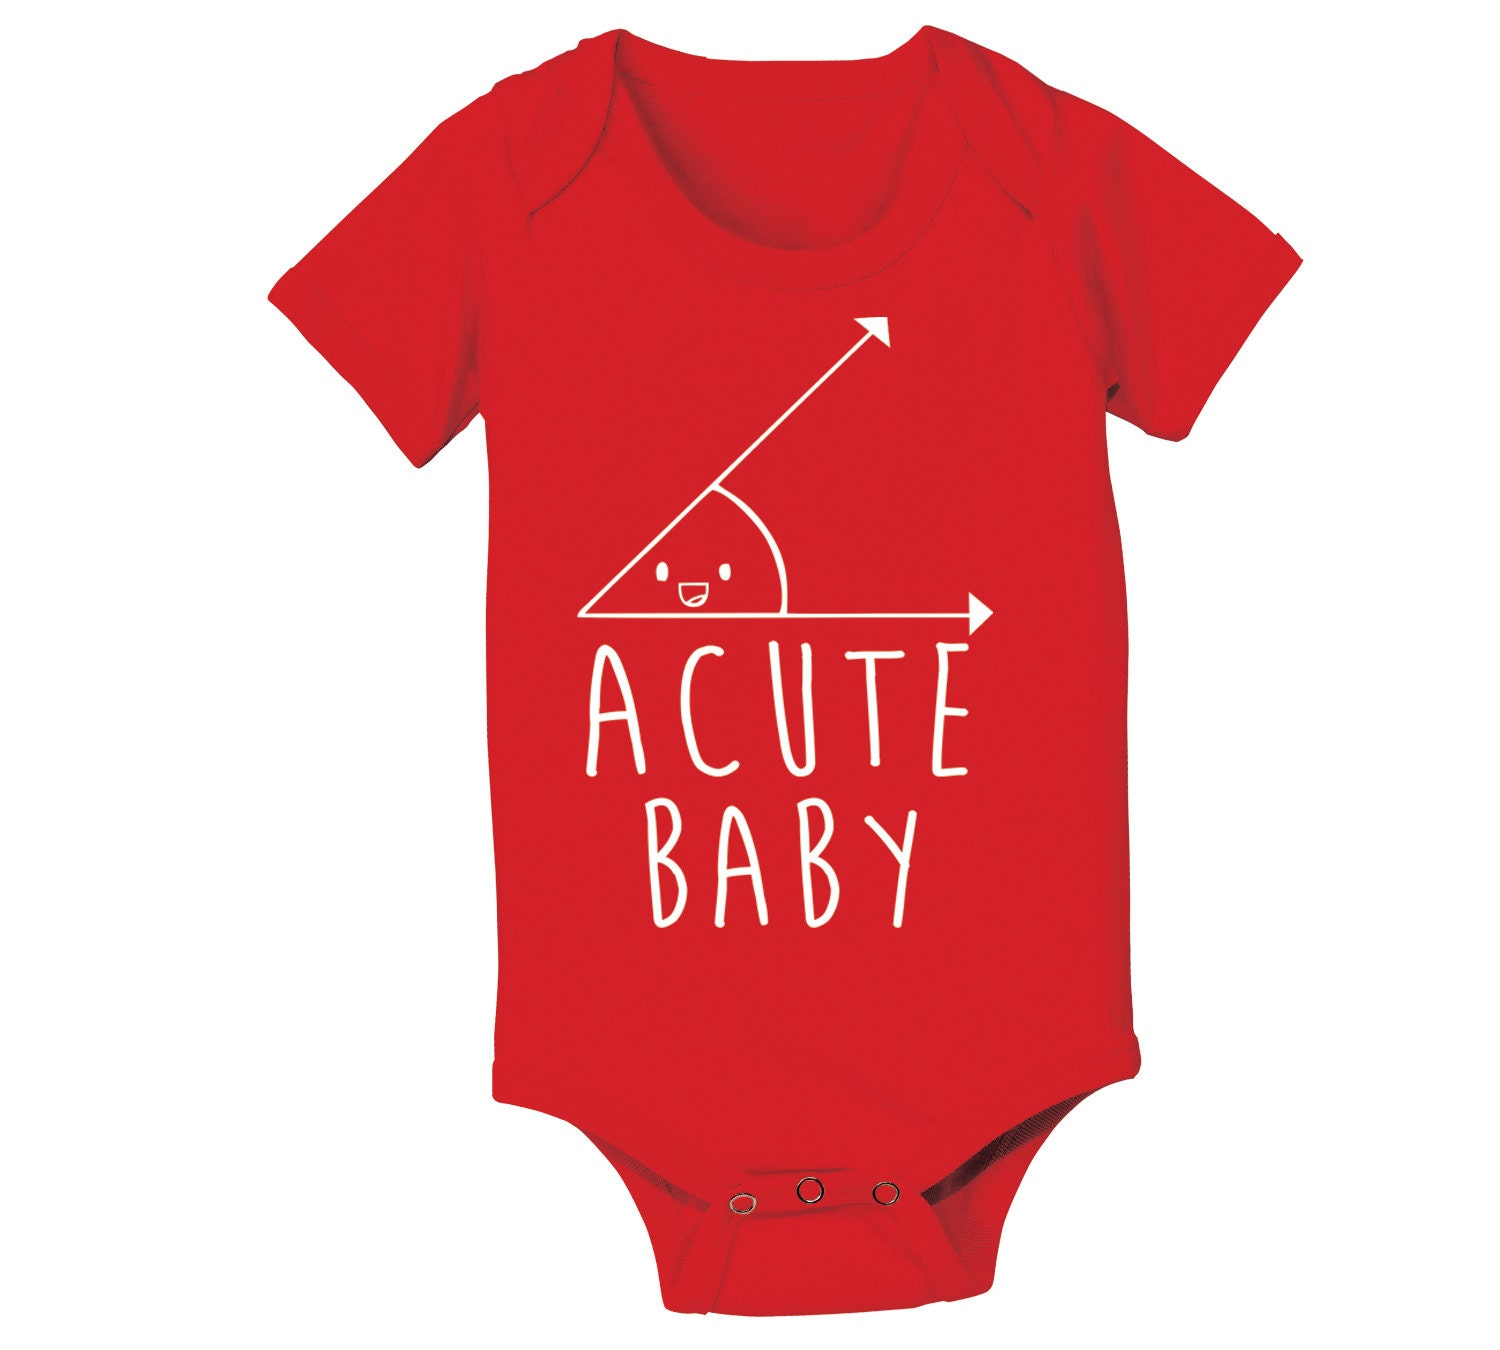 Acute Baby Funny Cute Humorous Geek Baby Boy Girl By Teestoyou